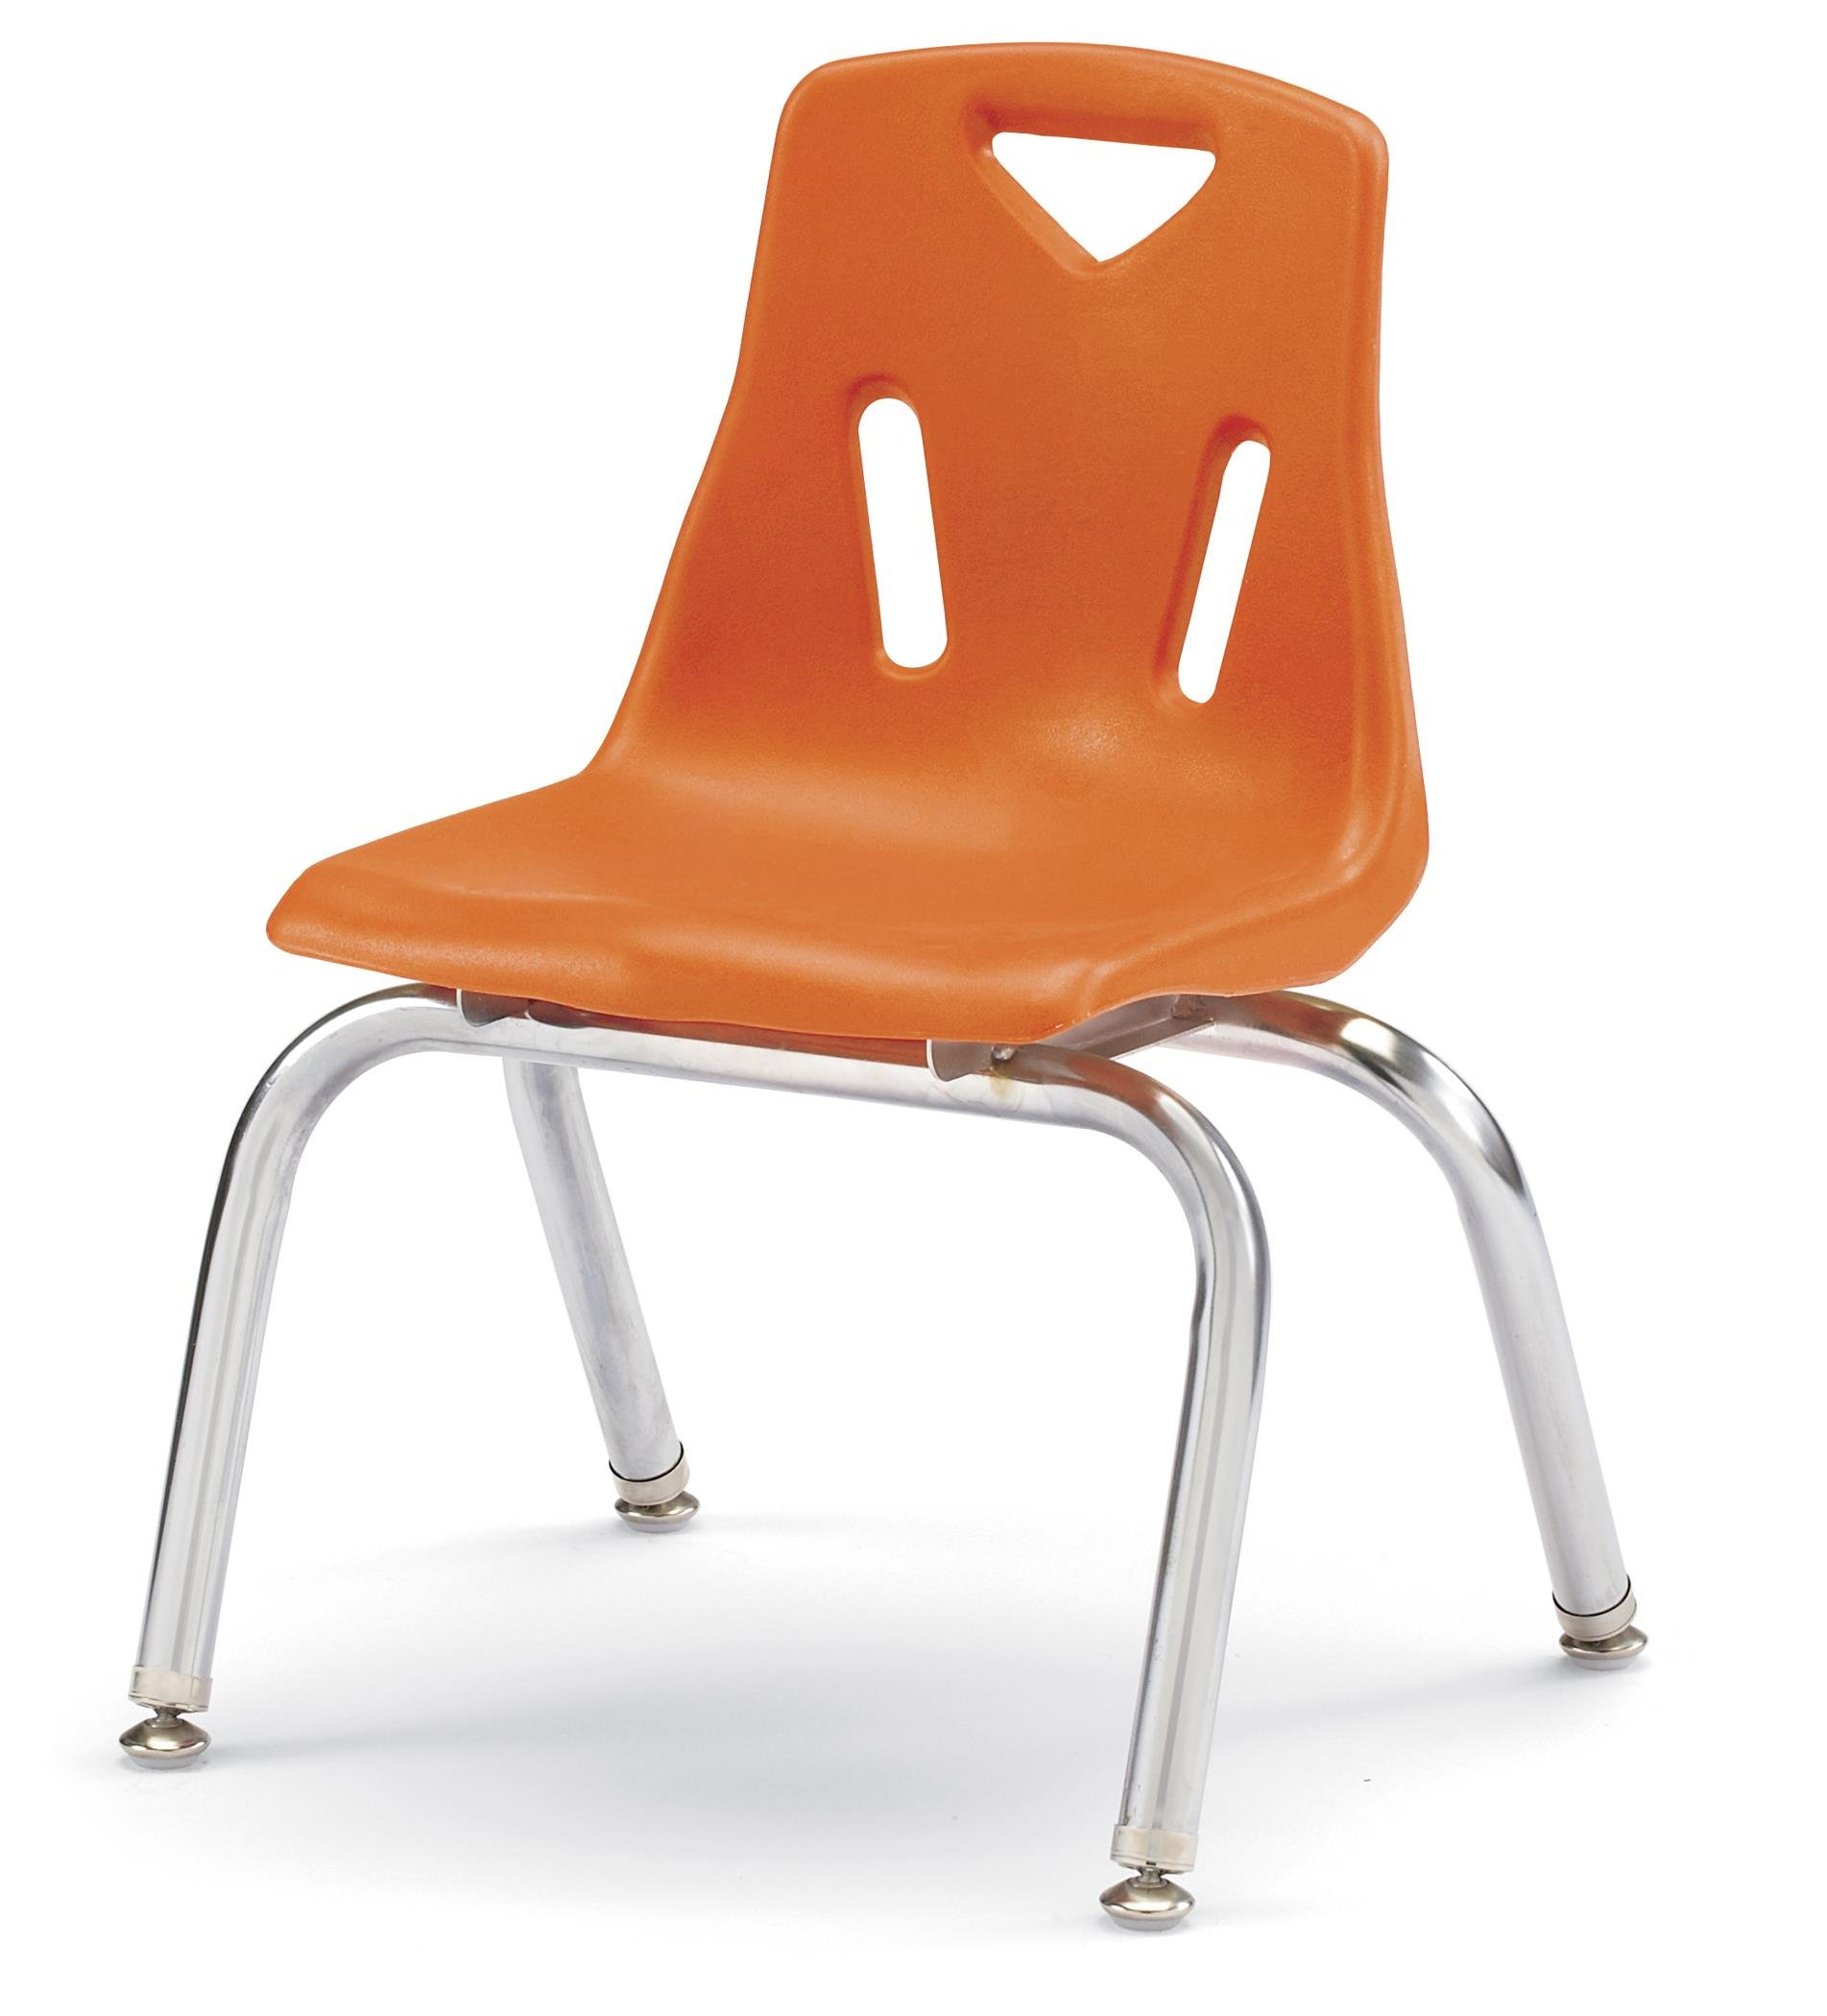 Berries 8146JC6114 Stacking Chairs with Chrome-Plated Legs, 16'' Ht, 19.5'' Height, 29.5'' Wide, 21'' Length, Orange (Pack of 6) by Berries